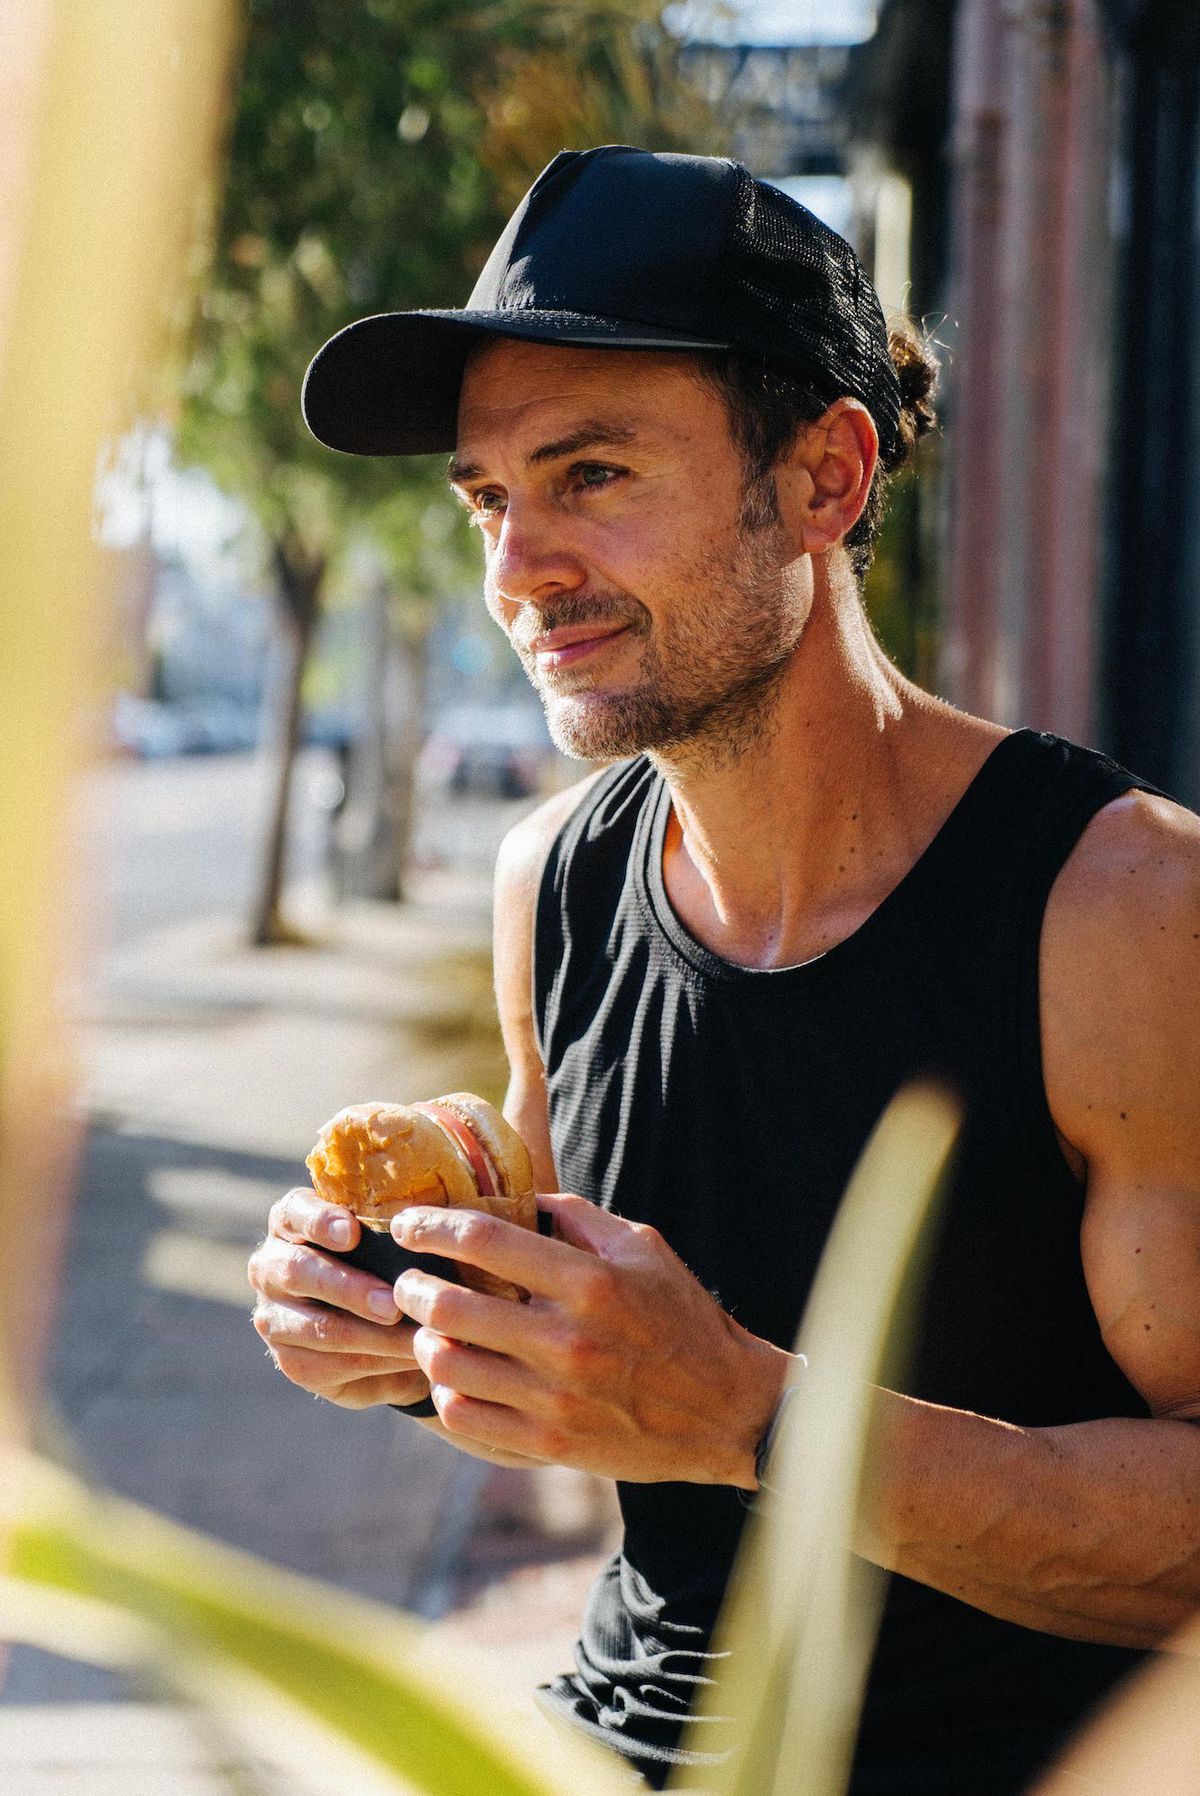 A chef in a black tank top holds a burger as shot through two plants.